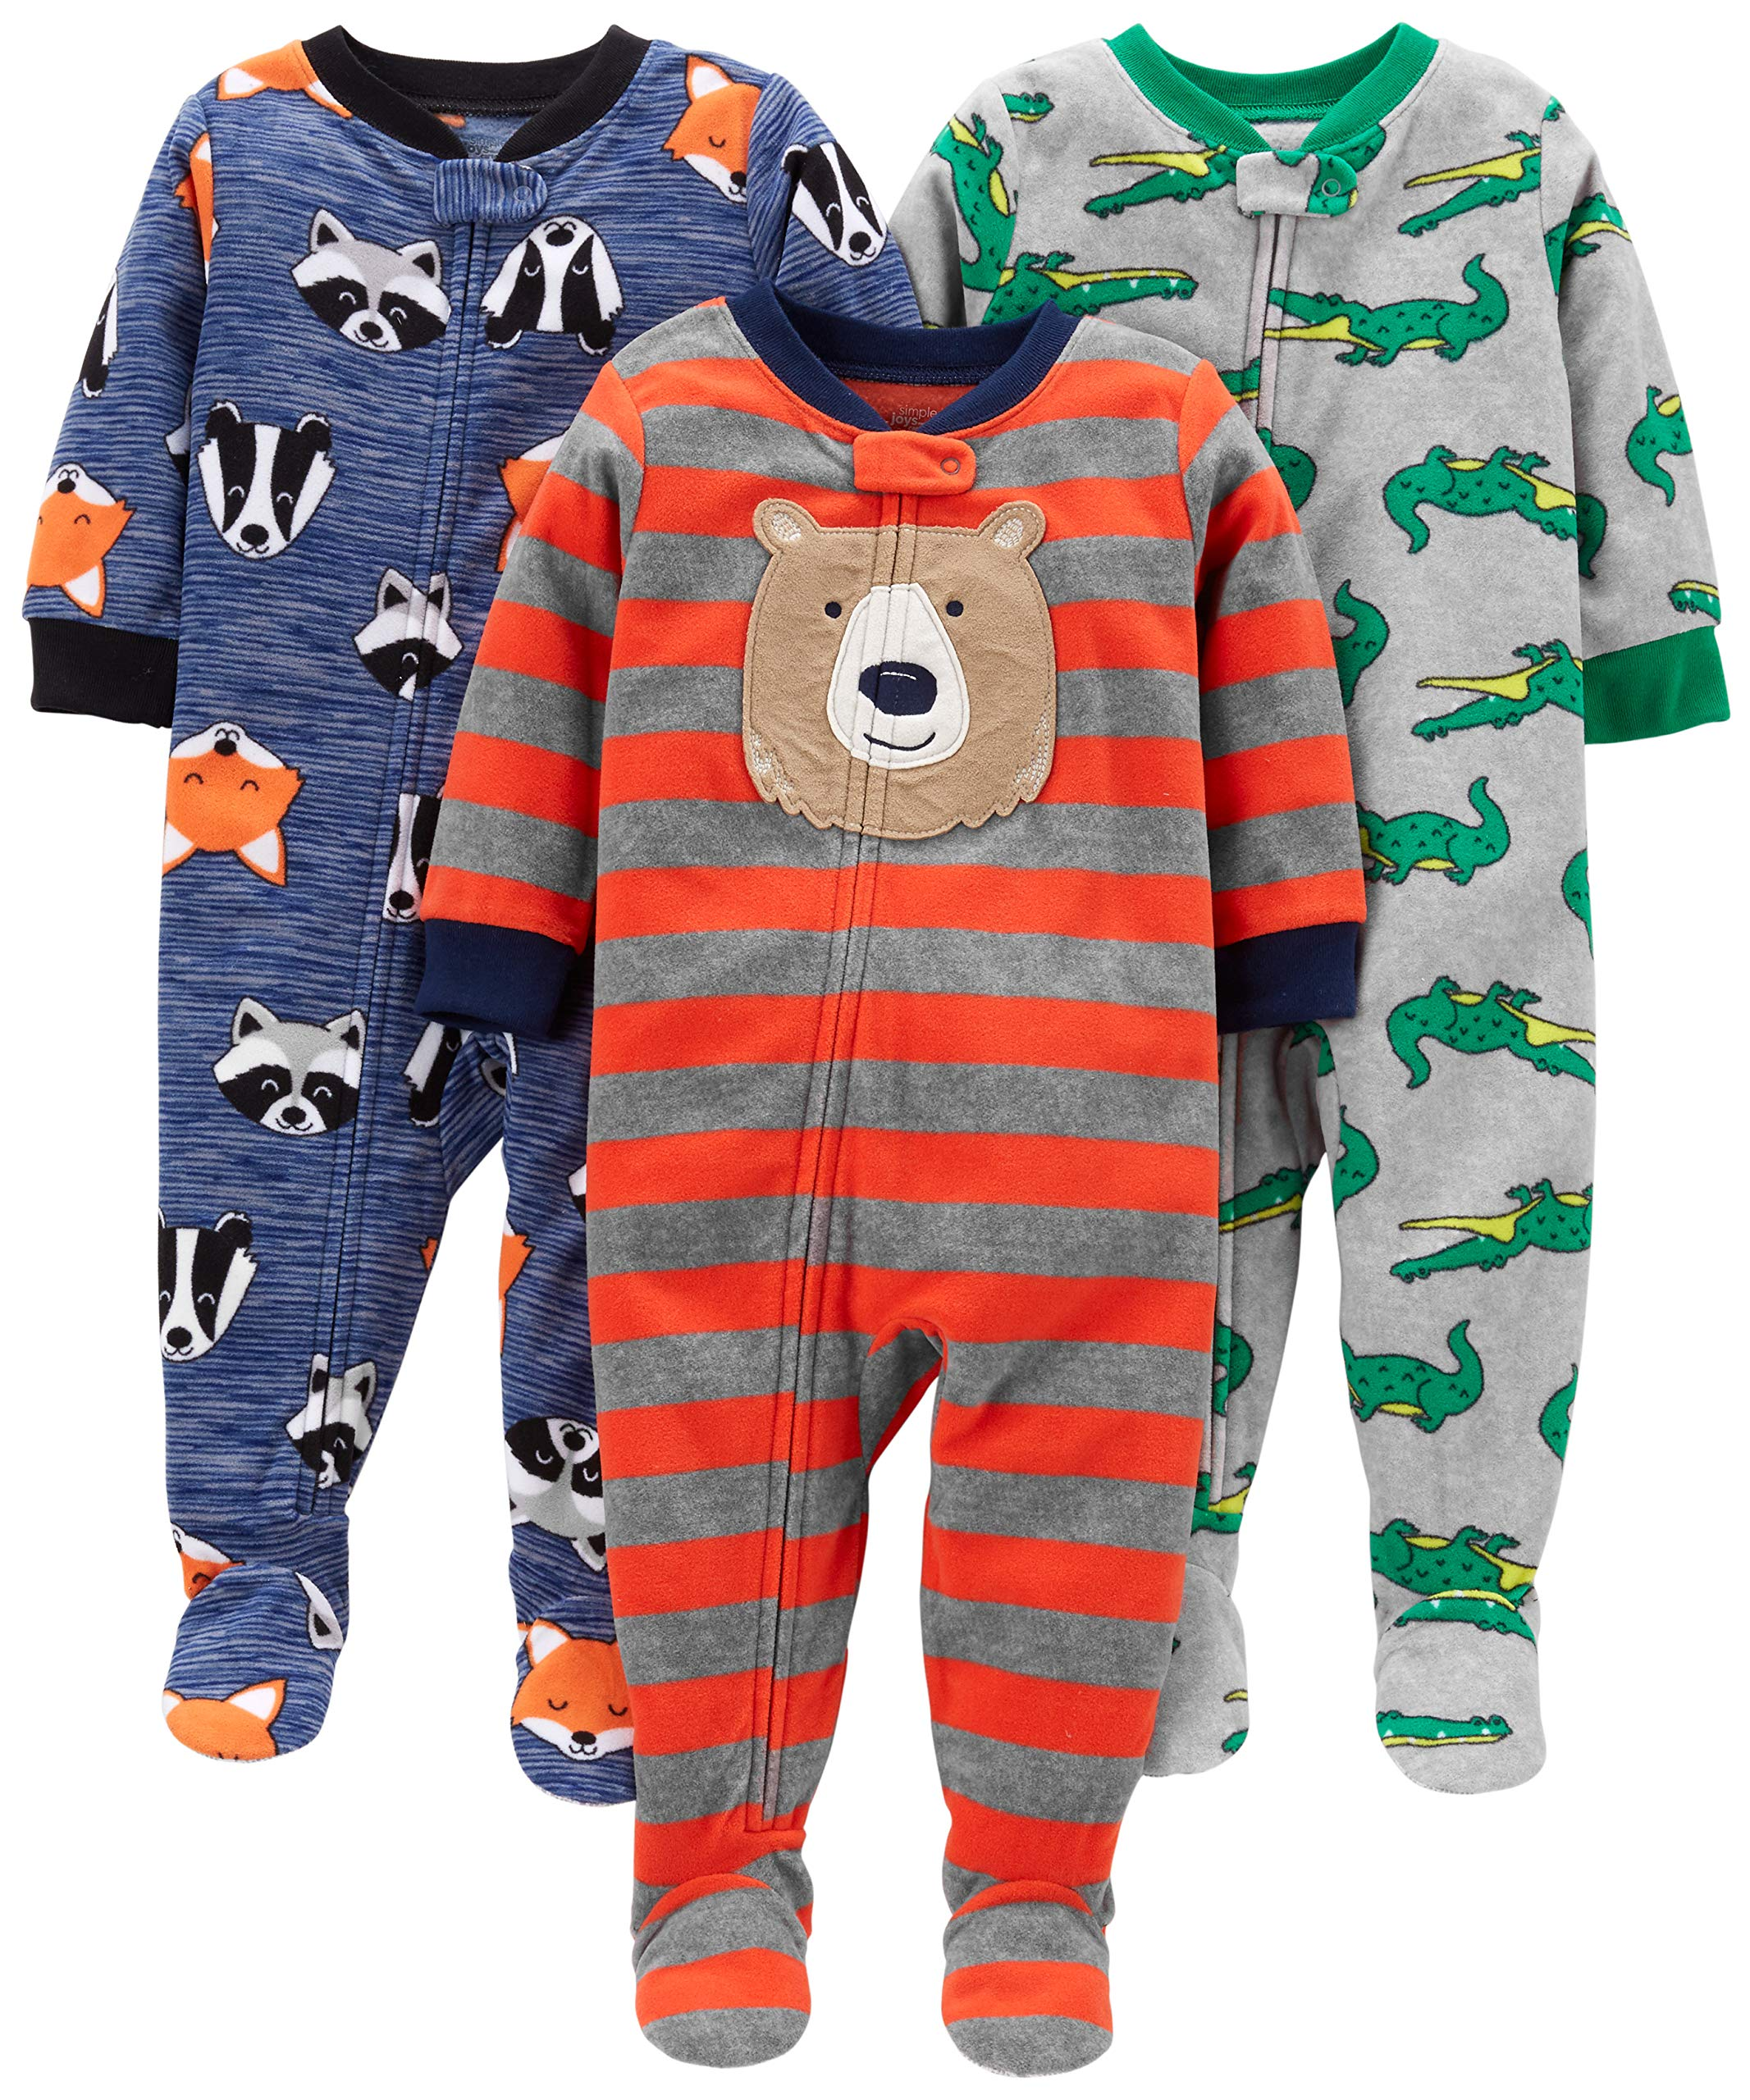 Simple Joys by Carter's Boys' 3-Pack Loose Fit Flame Resistant Fleece Footed Pajamas, Bear/Alligator/Fox/Racoon, 18 Months by Simple Joys by Carter's